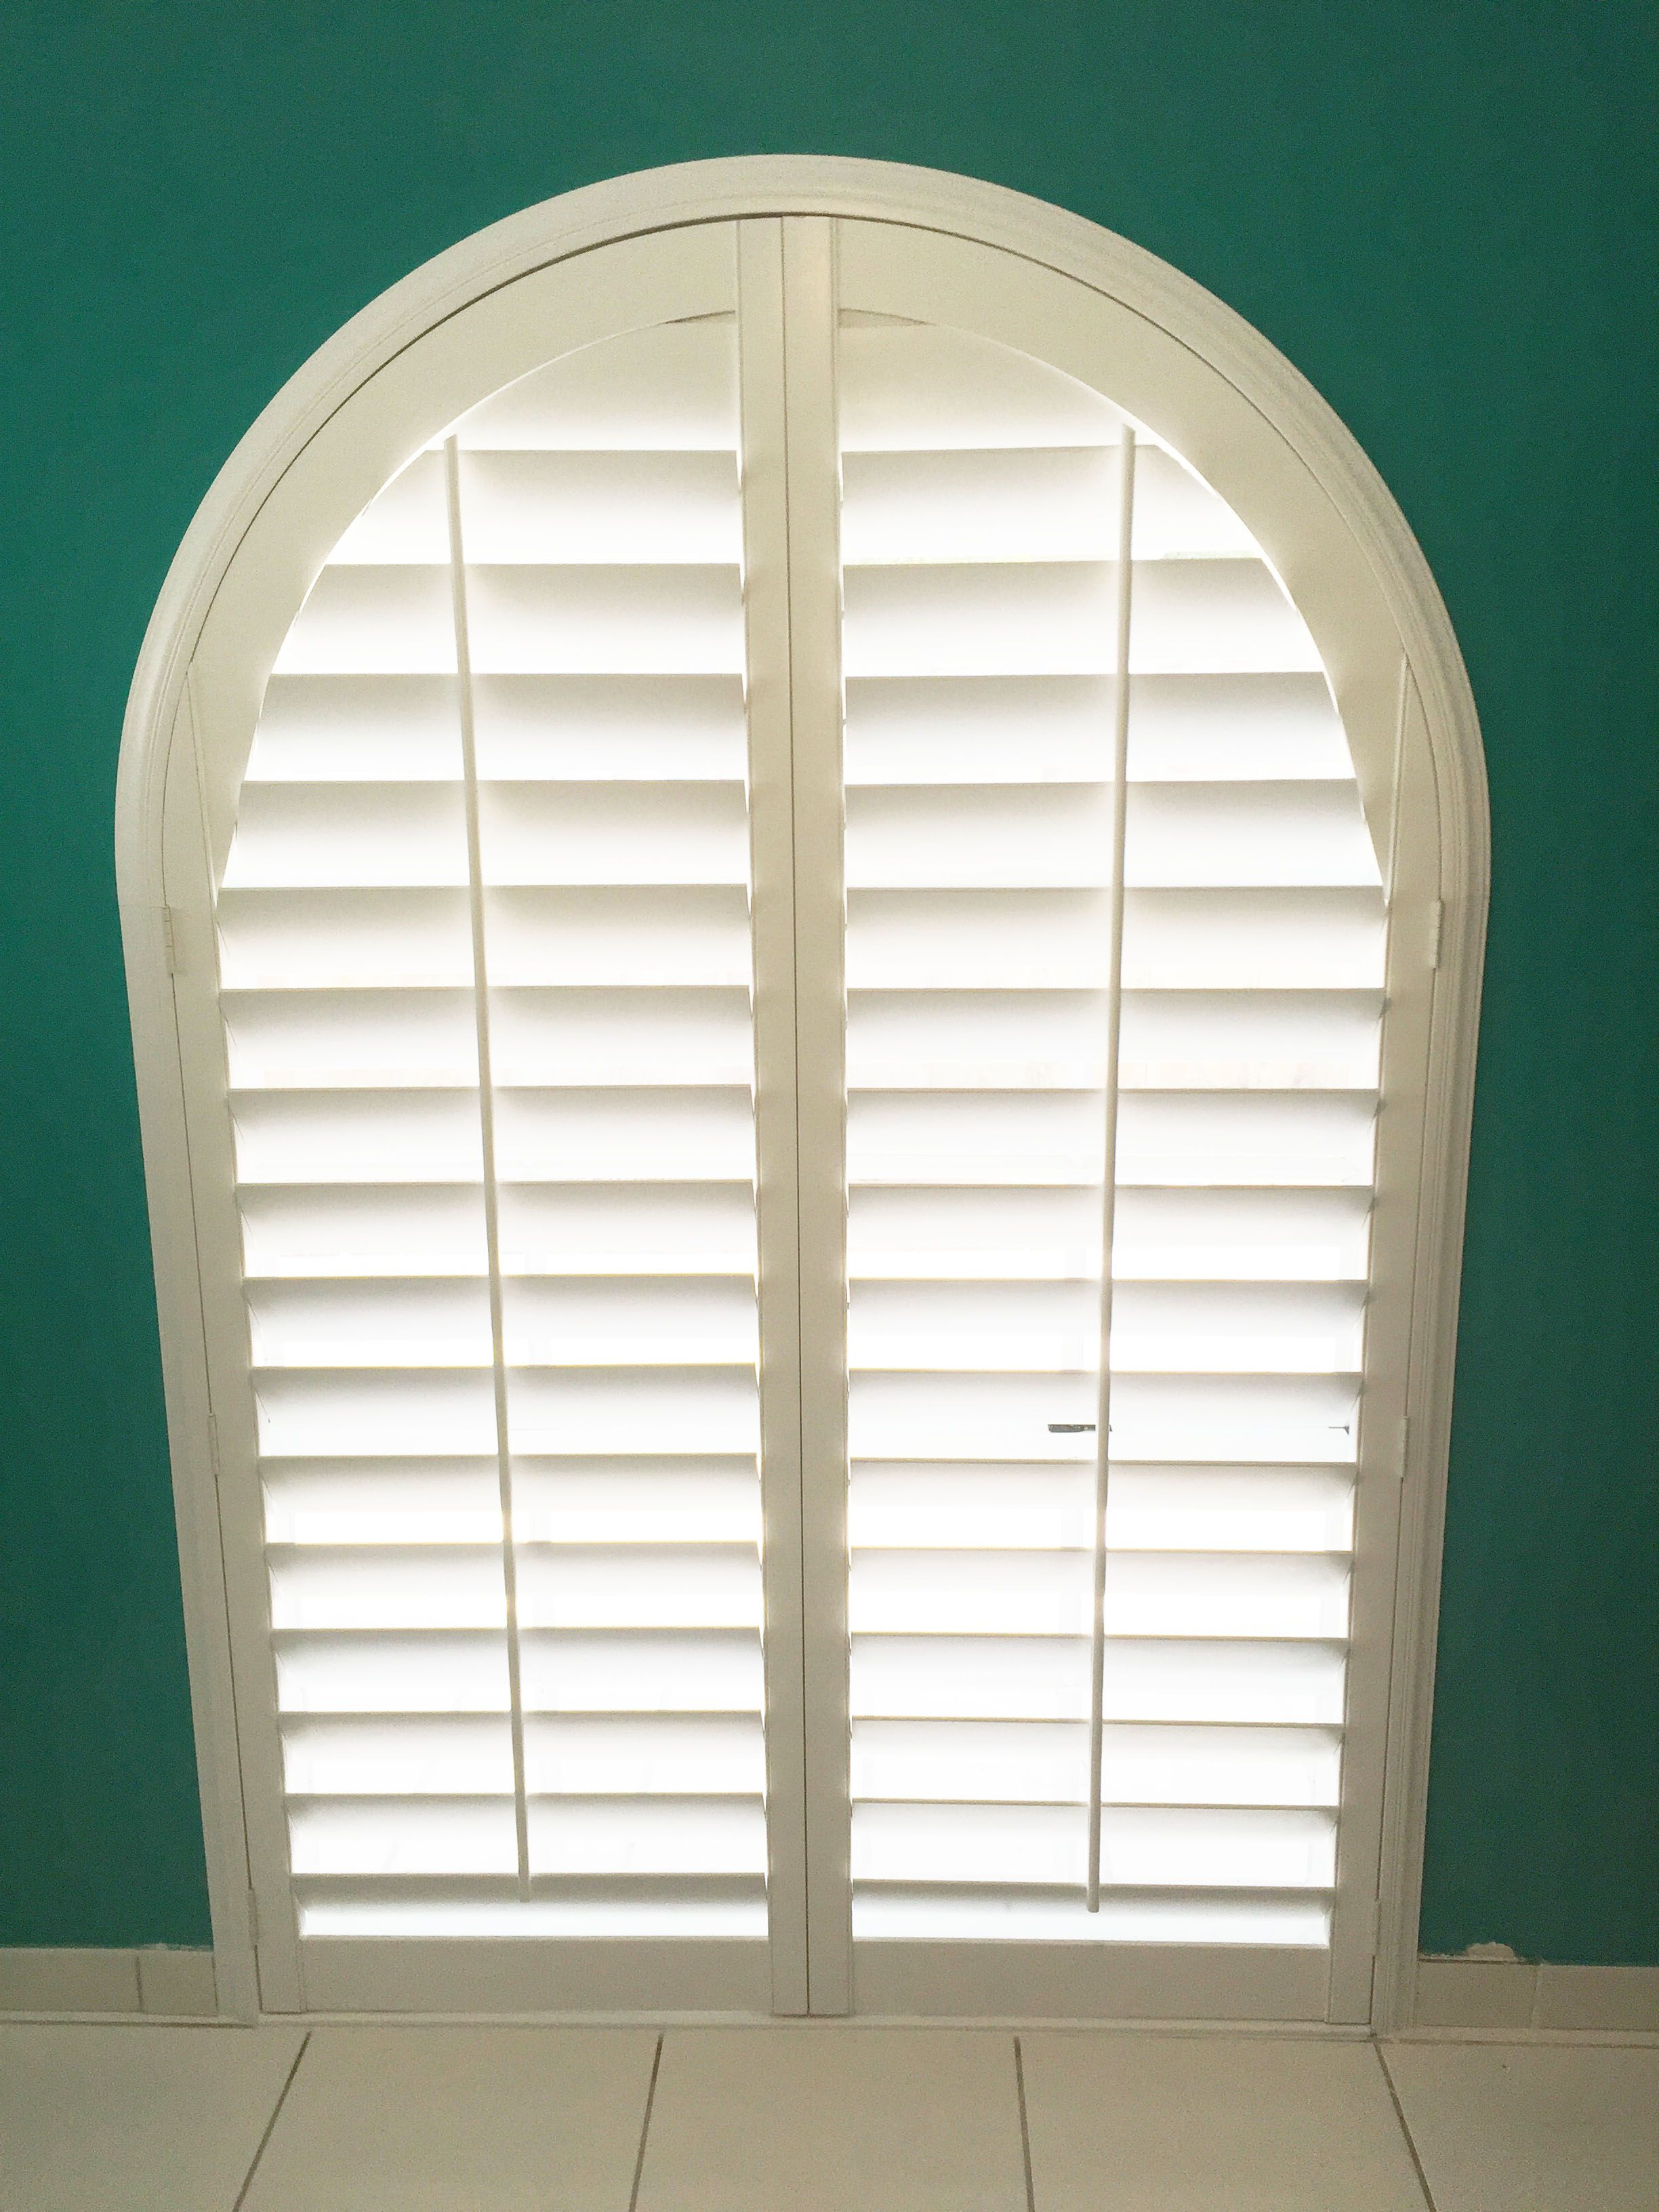 moon half shutters window shutter blinds shaped of and styles